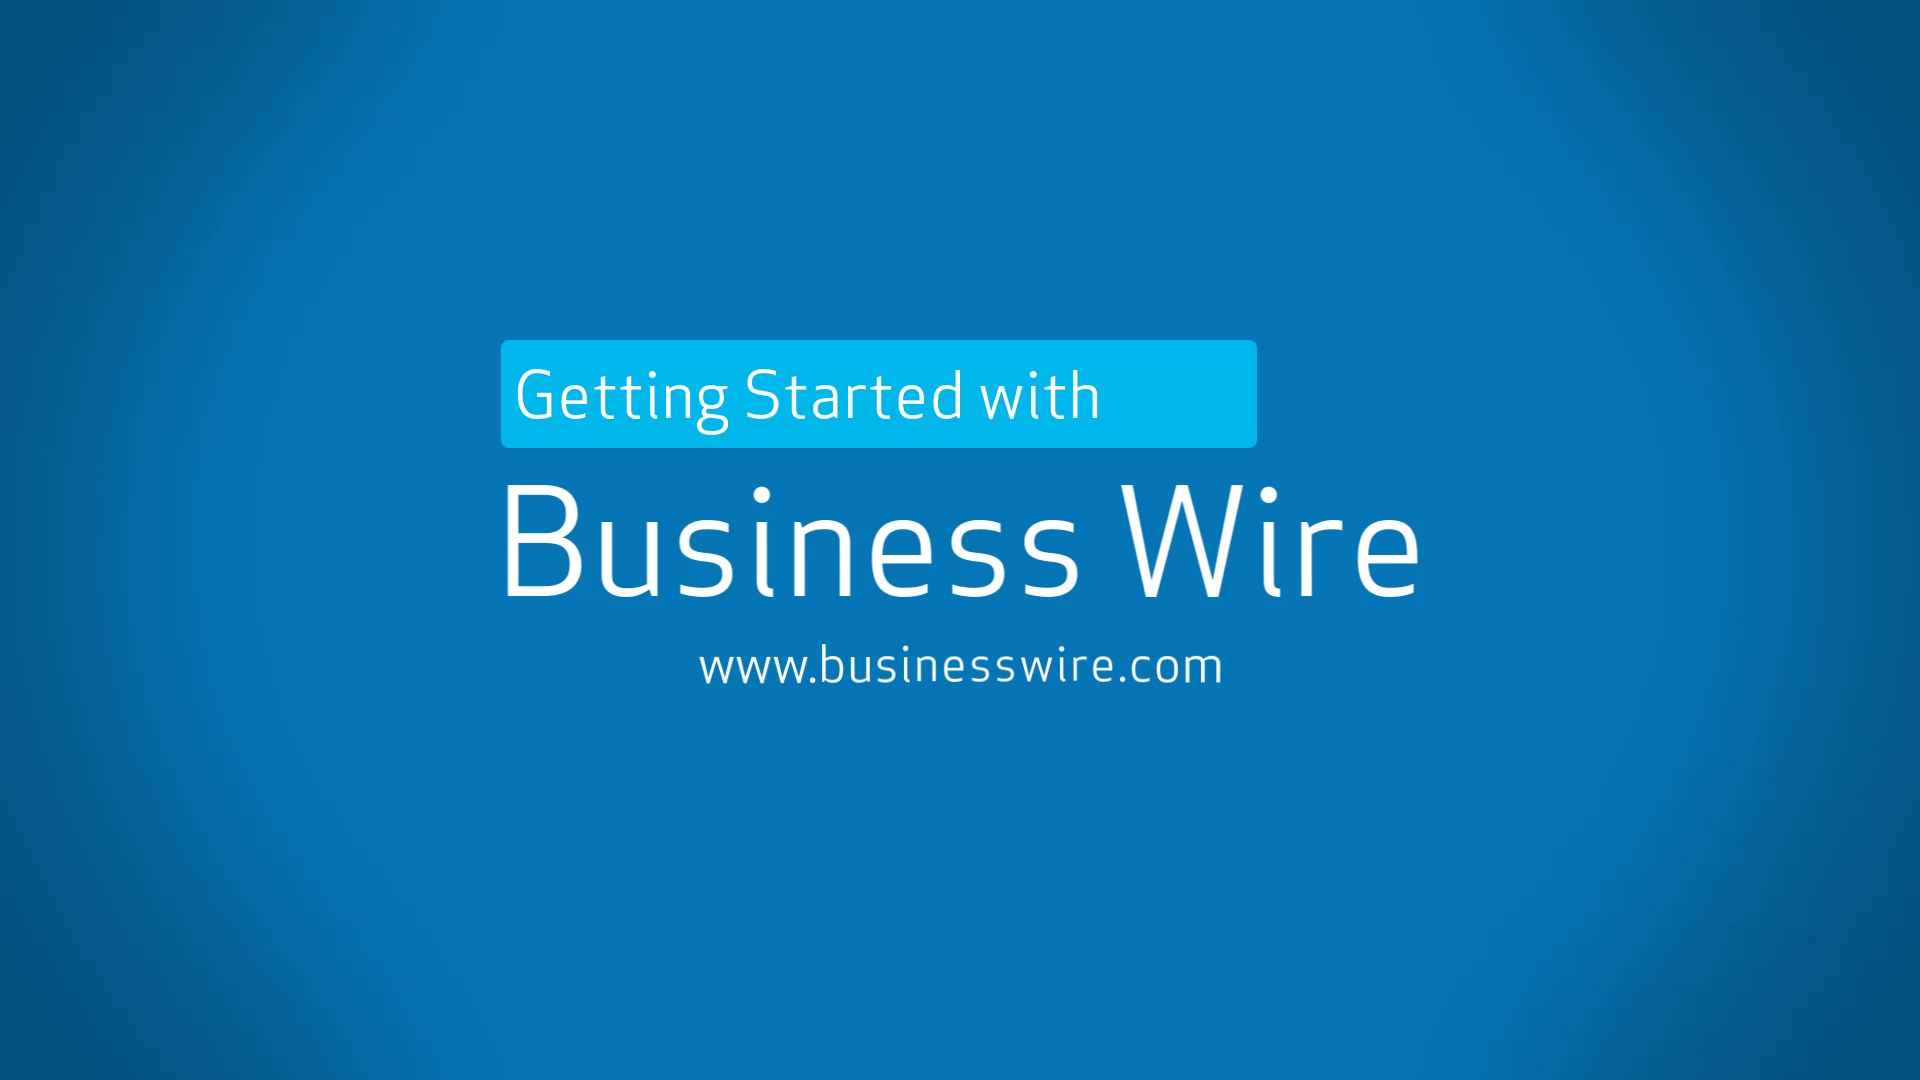 Submitting an Earnings Release with Business Wire